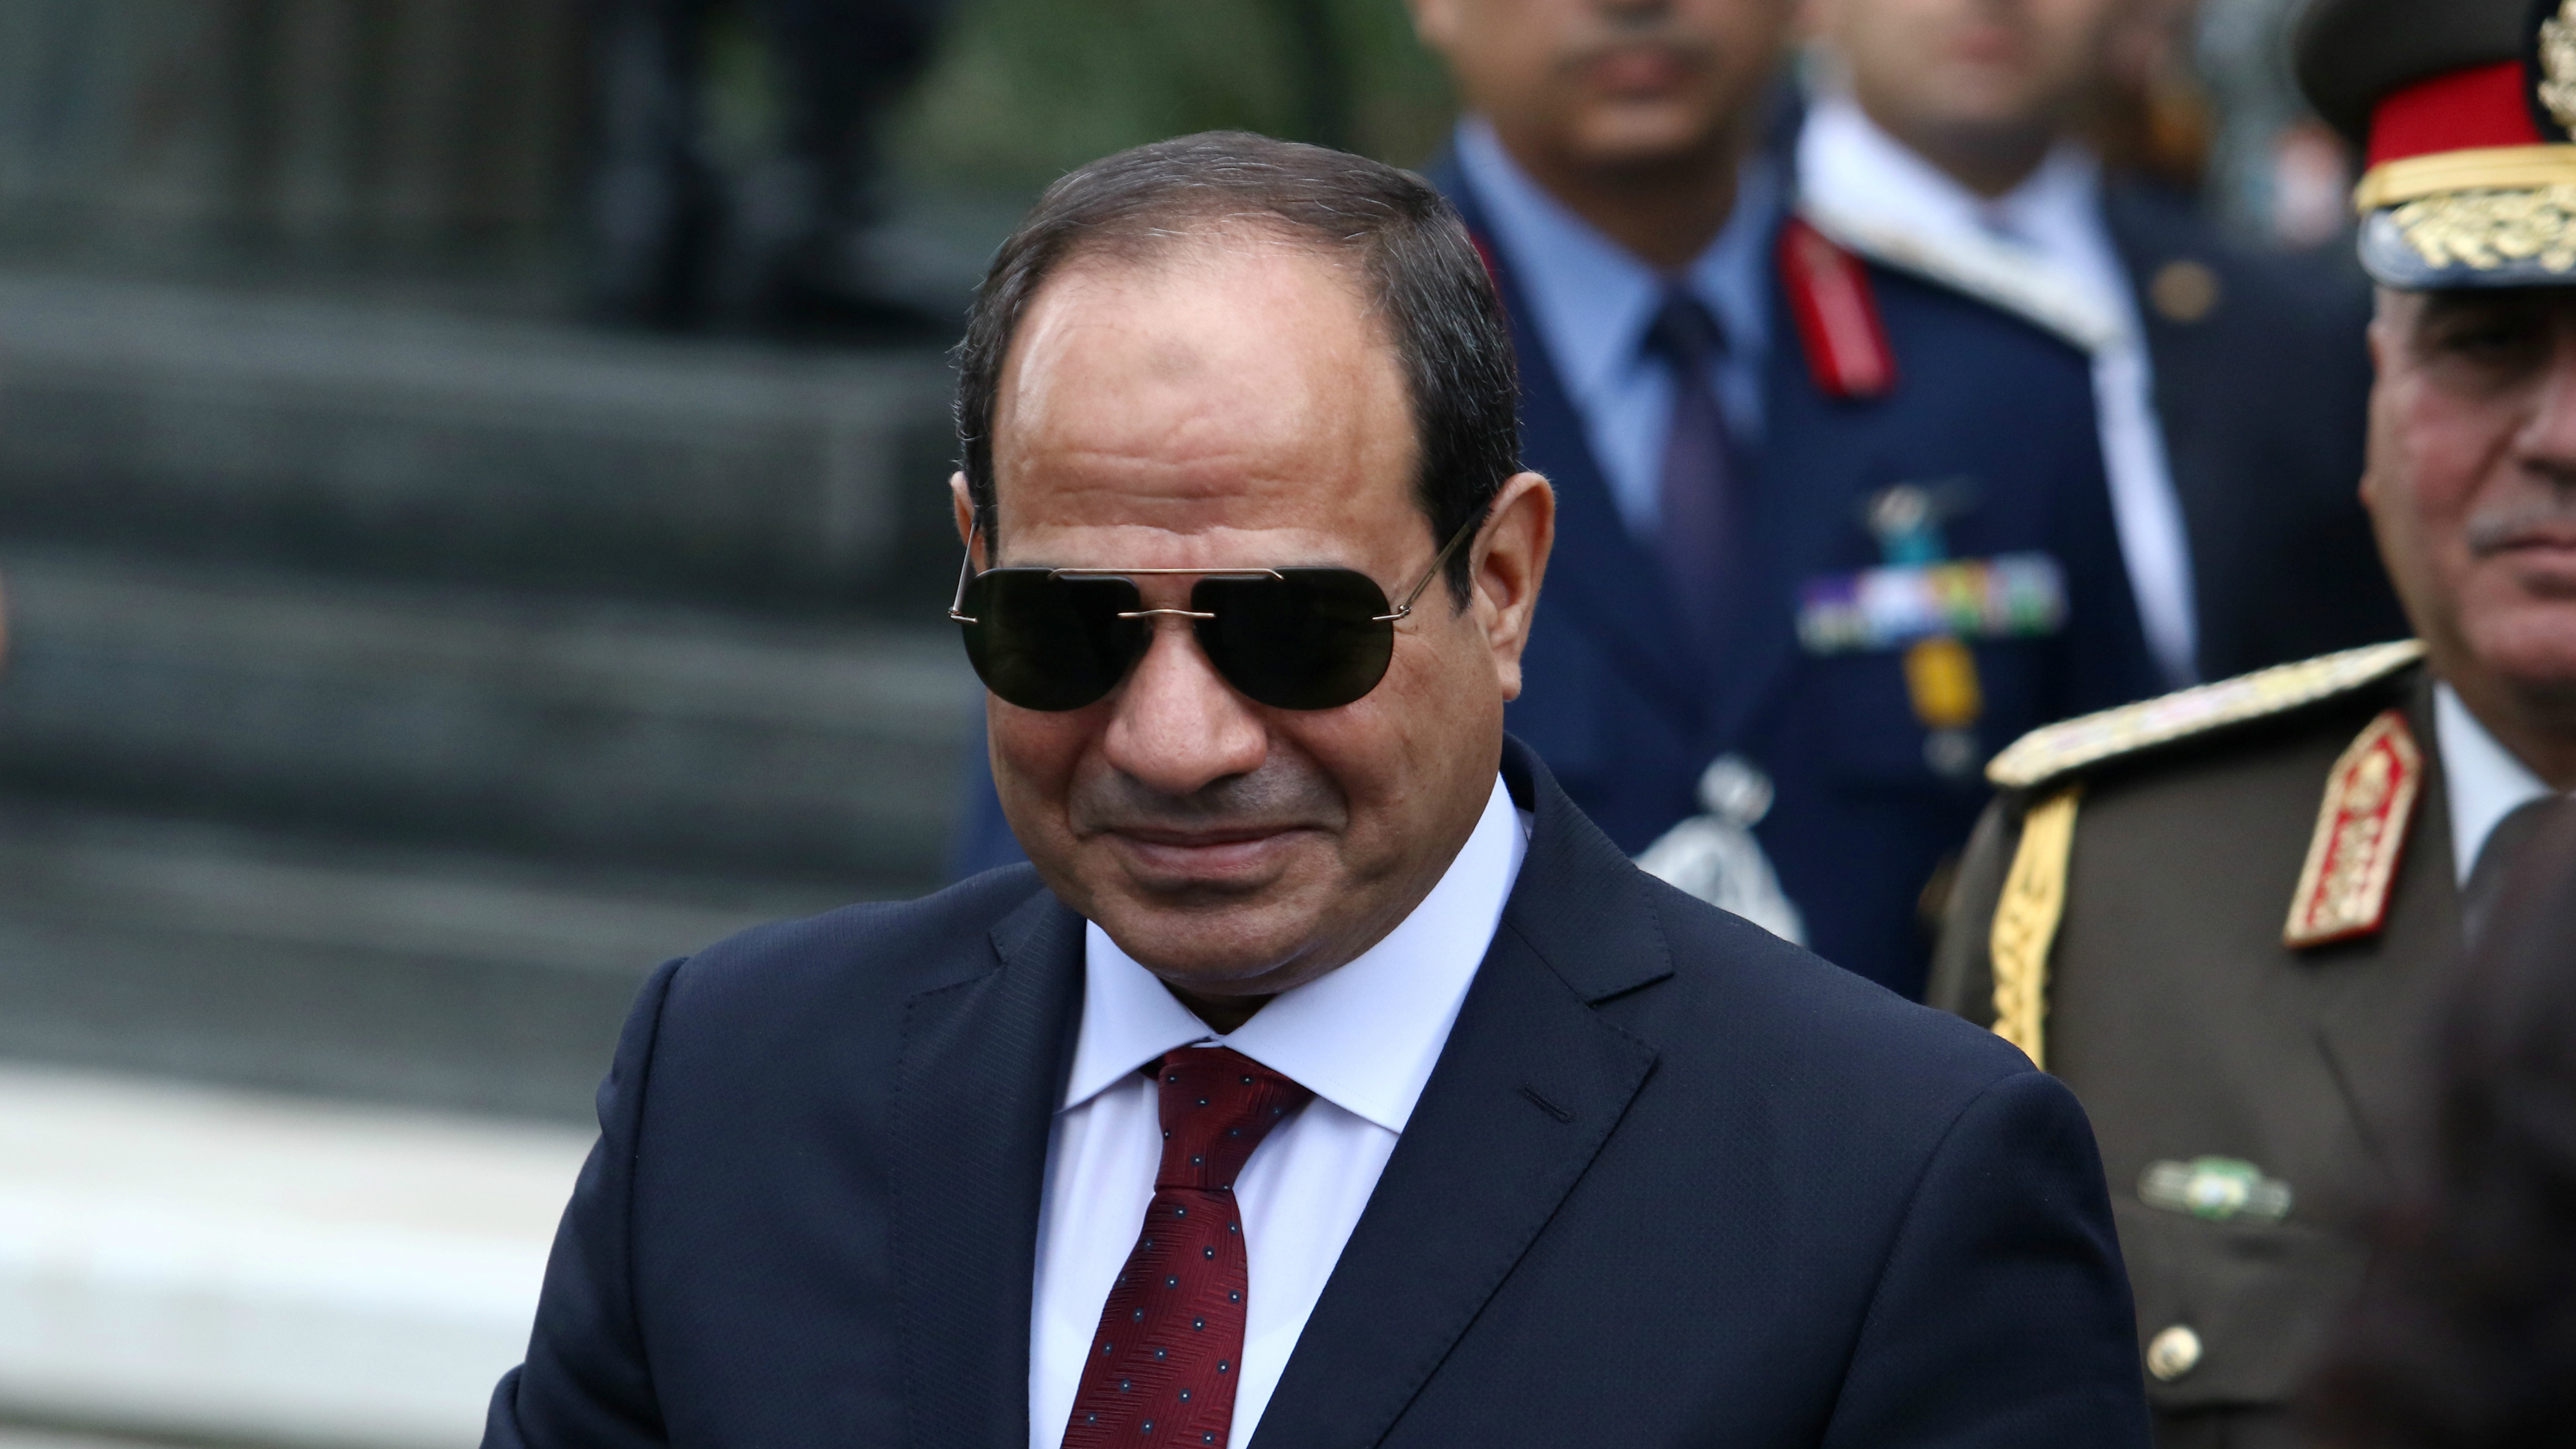 Egyptian President Abdul Fattah al-Sisi attends a welcome ceremony at the Presidential Palace in Nicosia, Cyprus, Nov. 20, 2017.